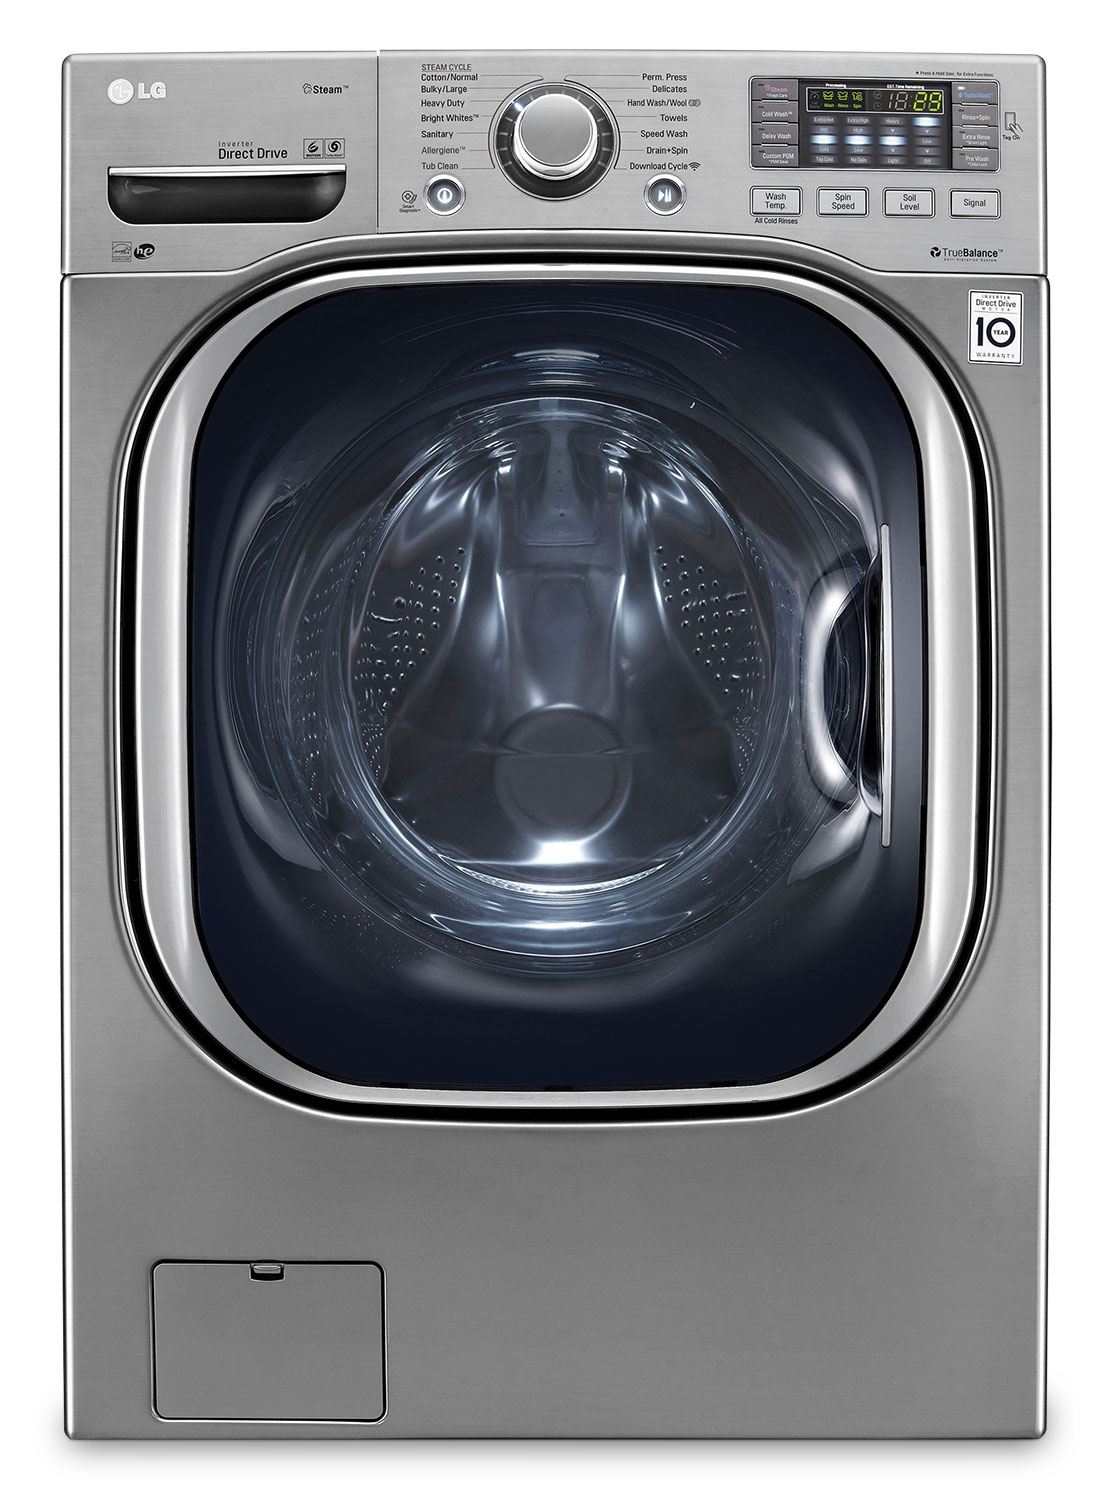 Washers and Dryers - LG 5.2 Cu. Ft. Front-Load Washer – Graphite Steel